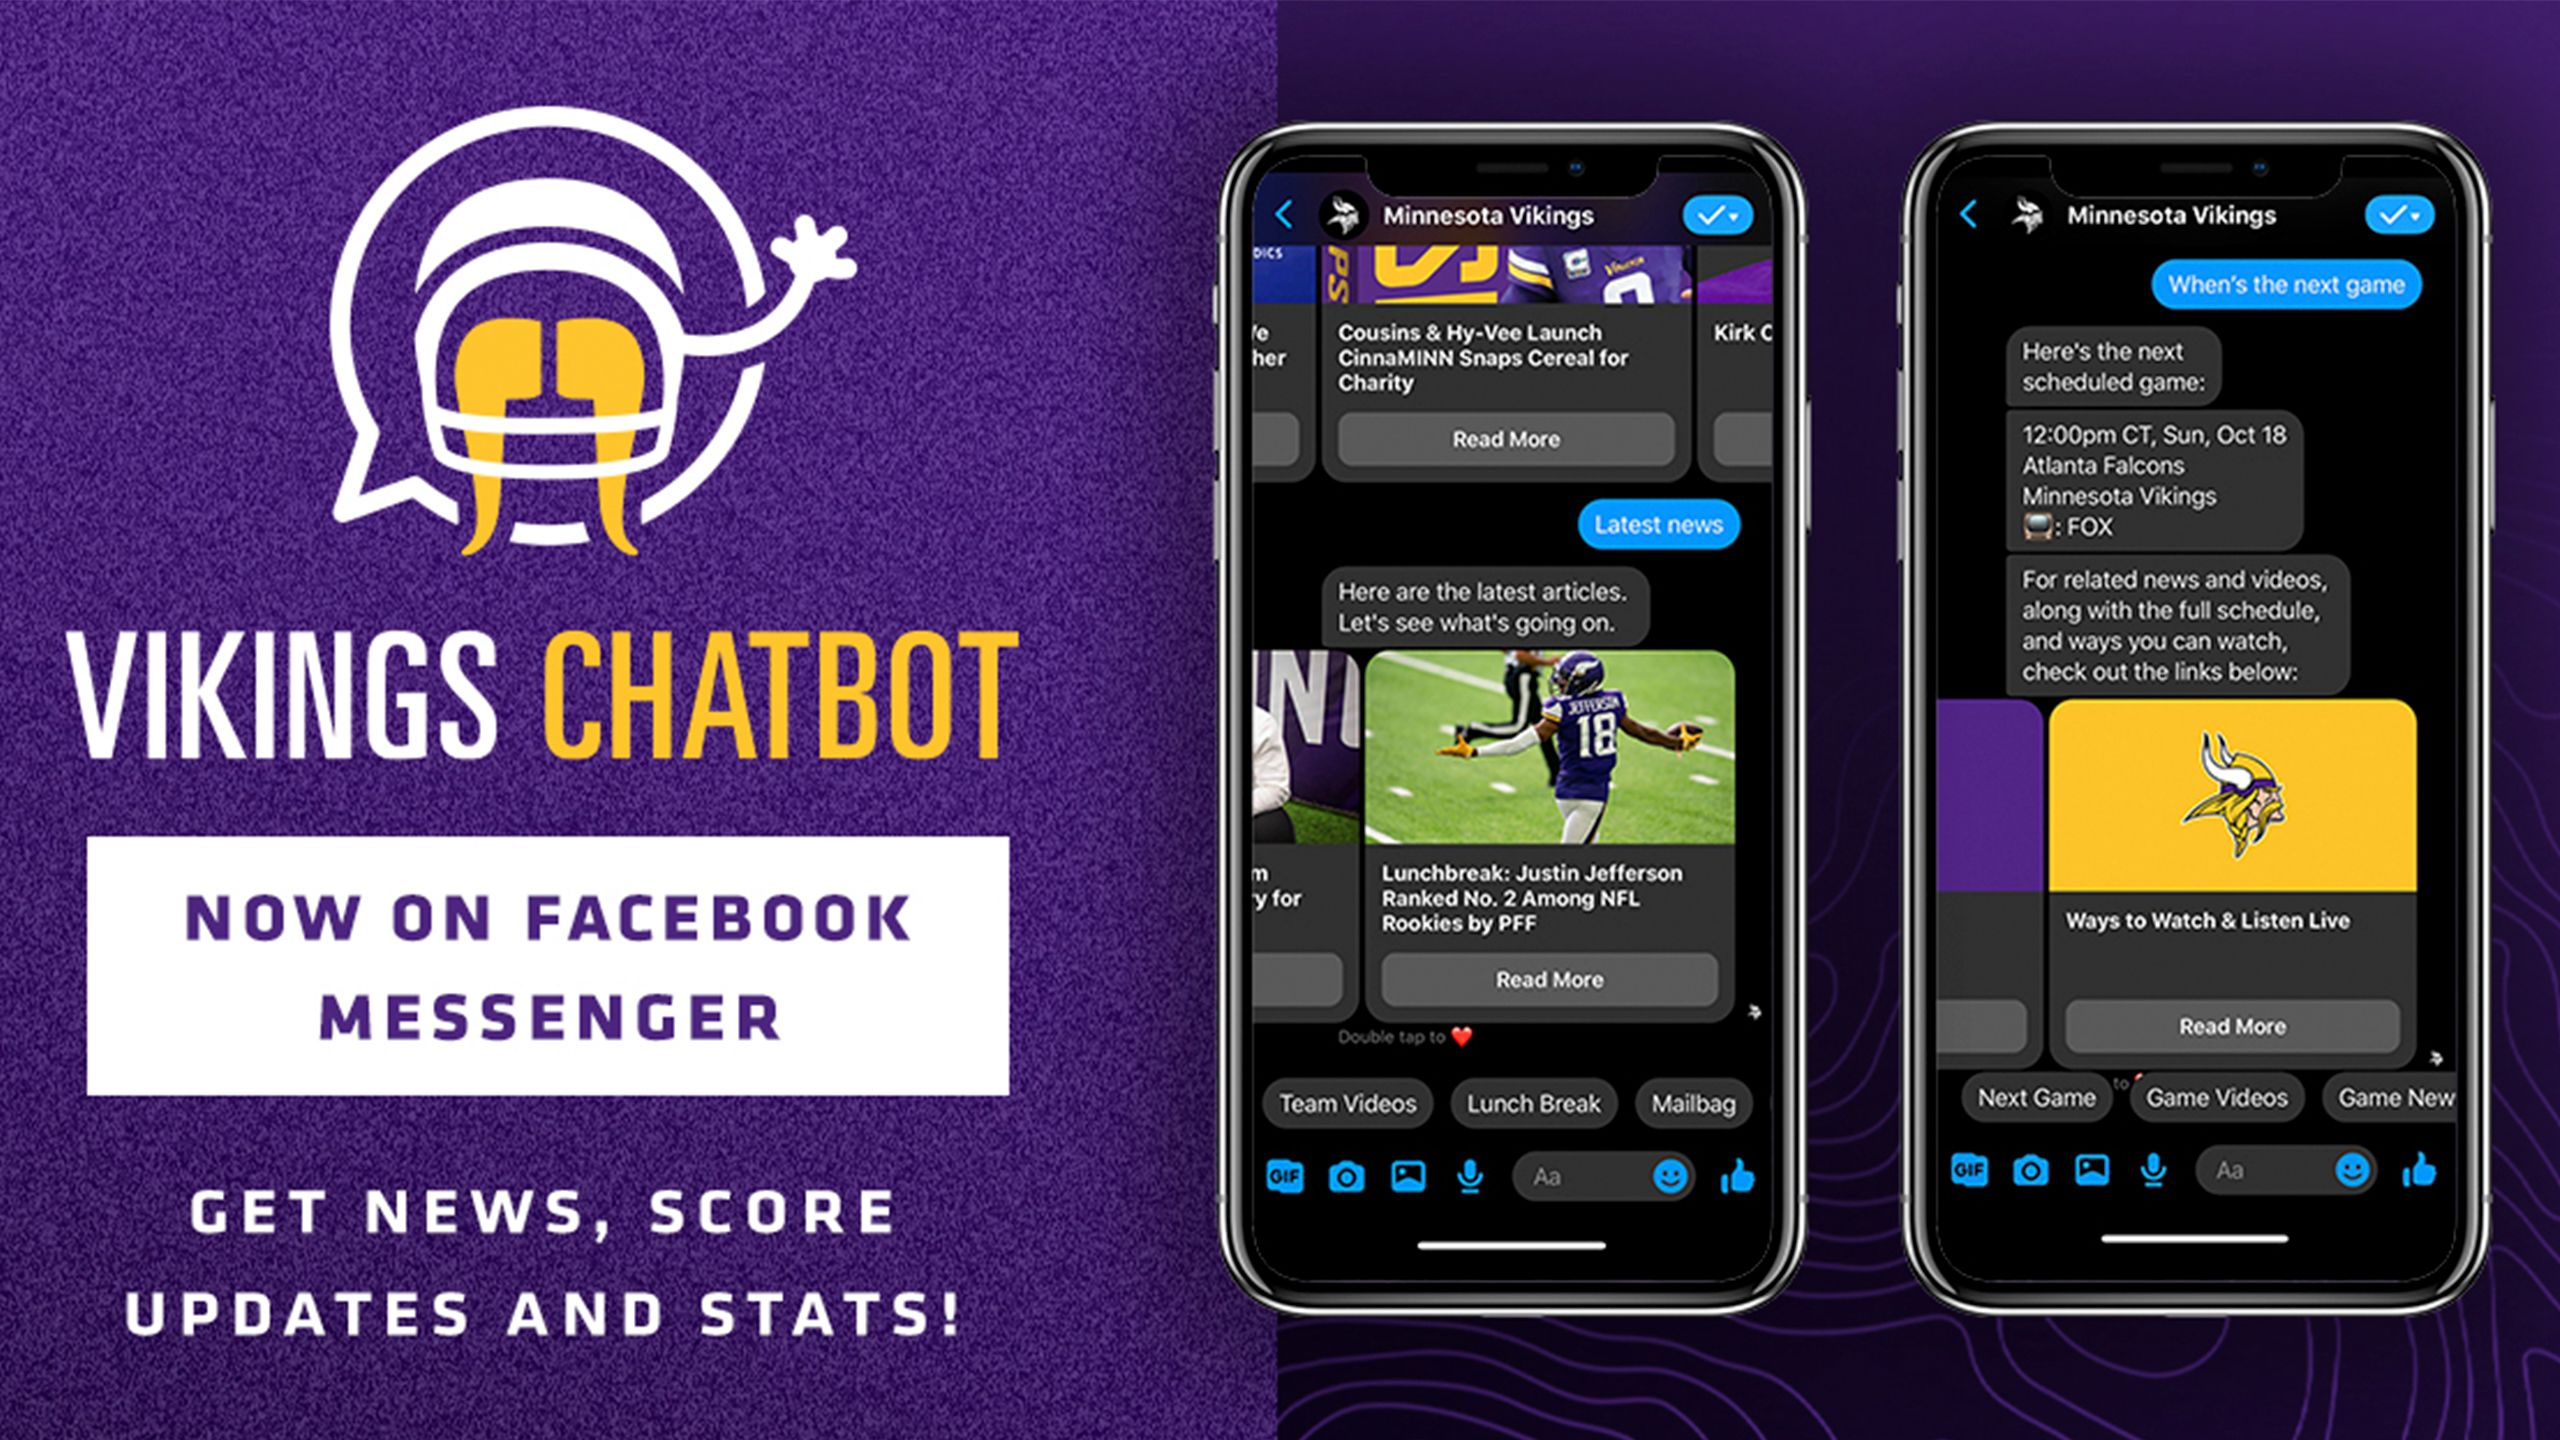 Check Out The Vikings Chatbot on Facebook Messenger